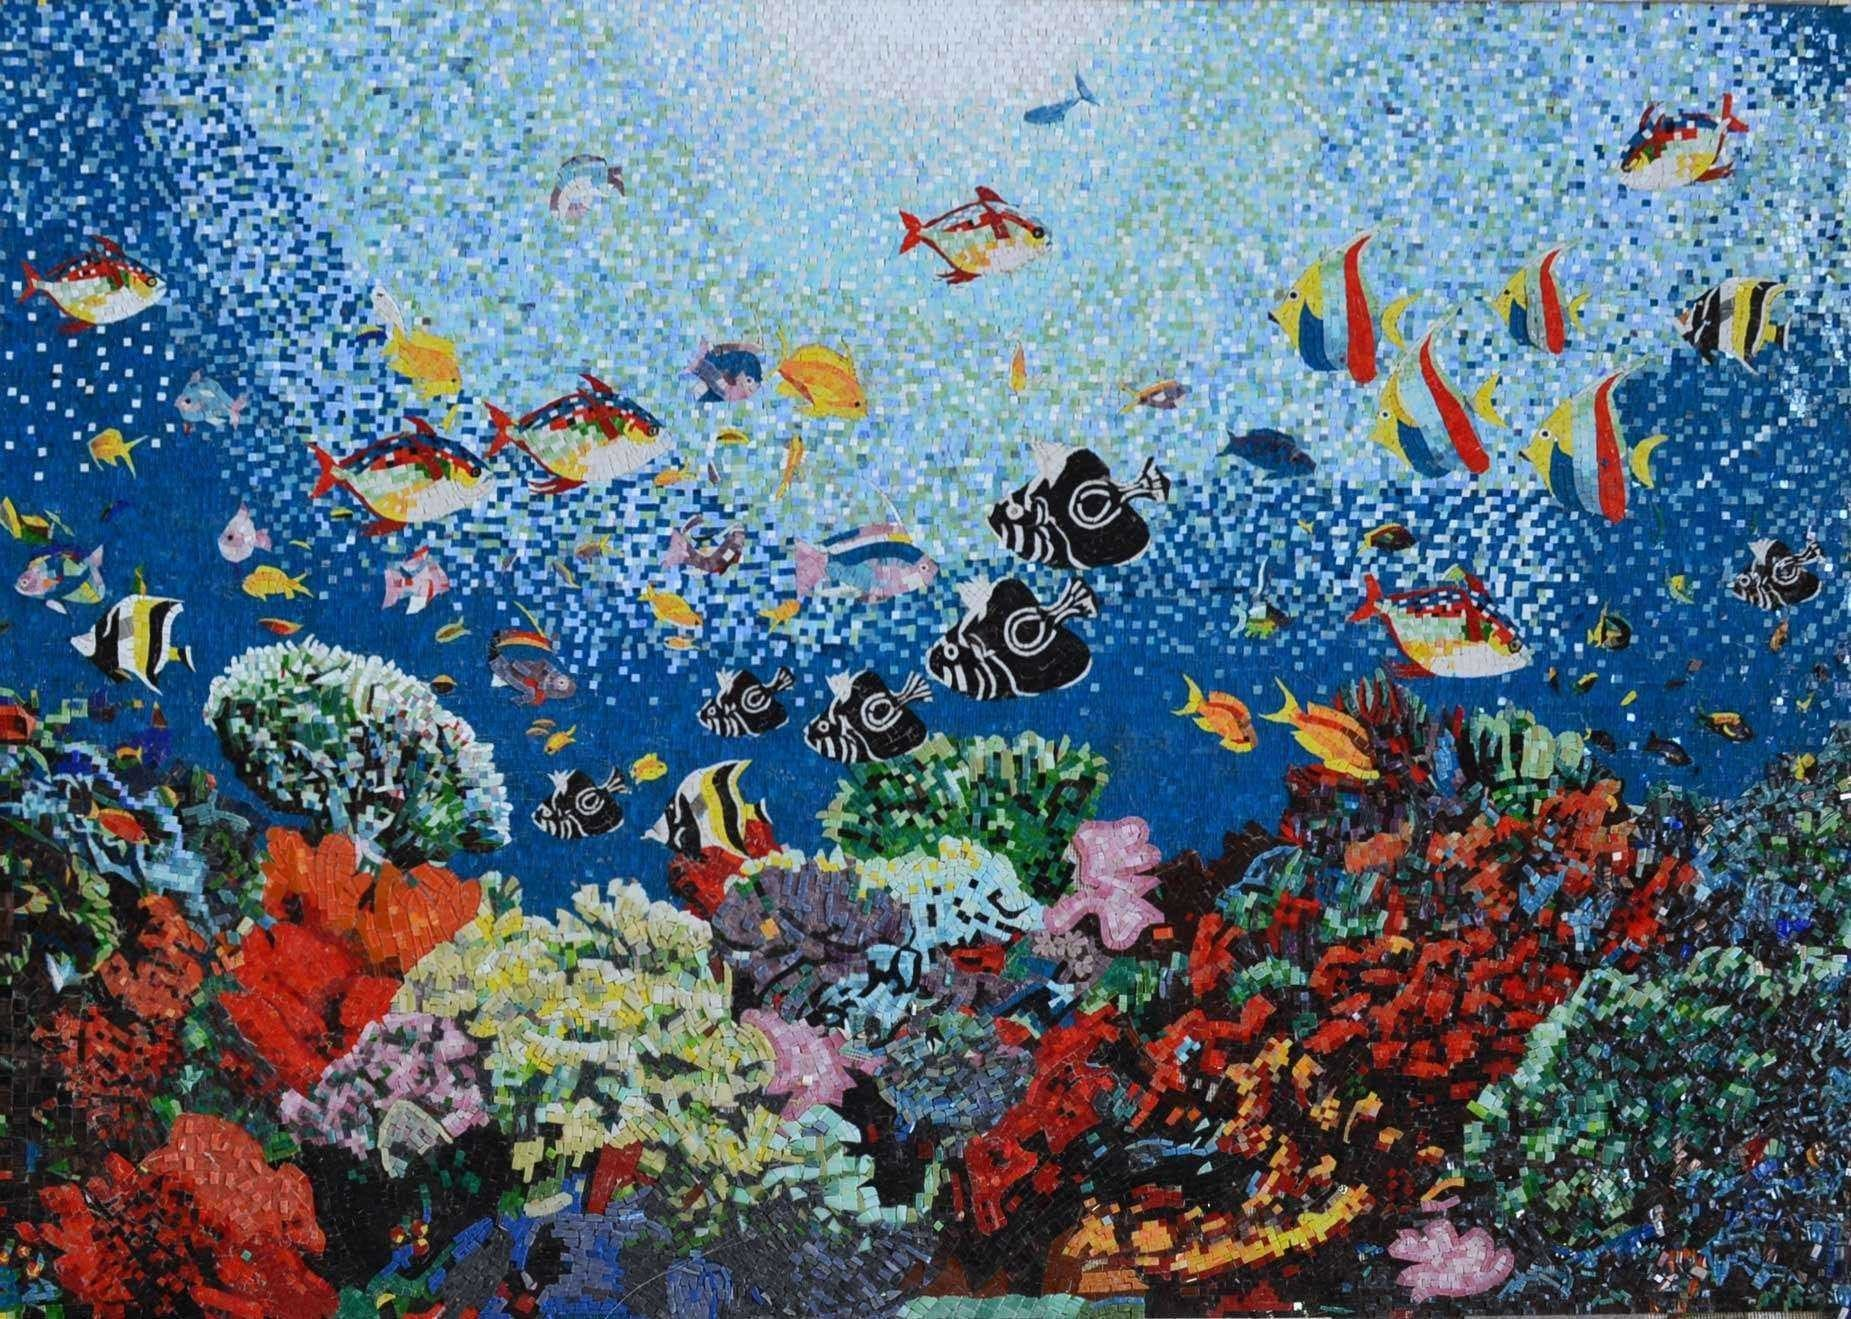 Aquatic ocean scene glass mosaic pool tiles marine life for Pool design mosaic tiles